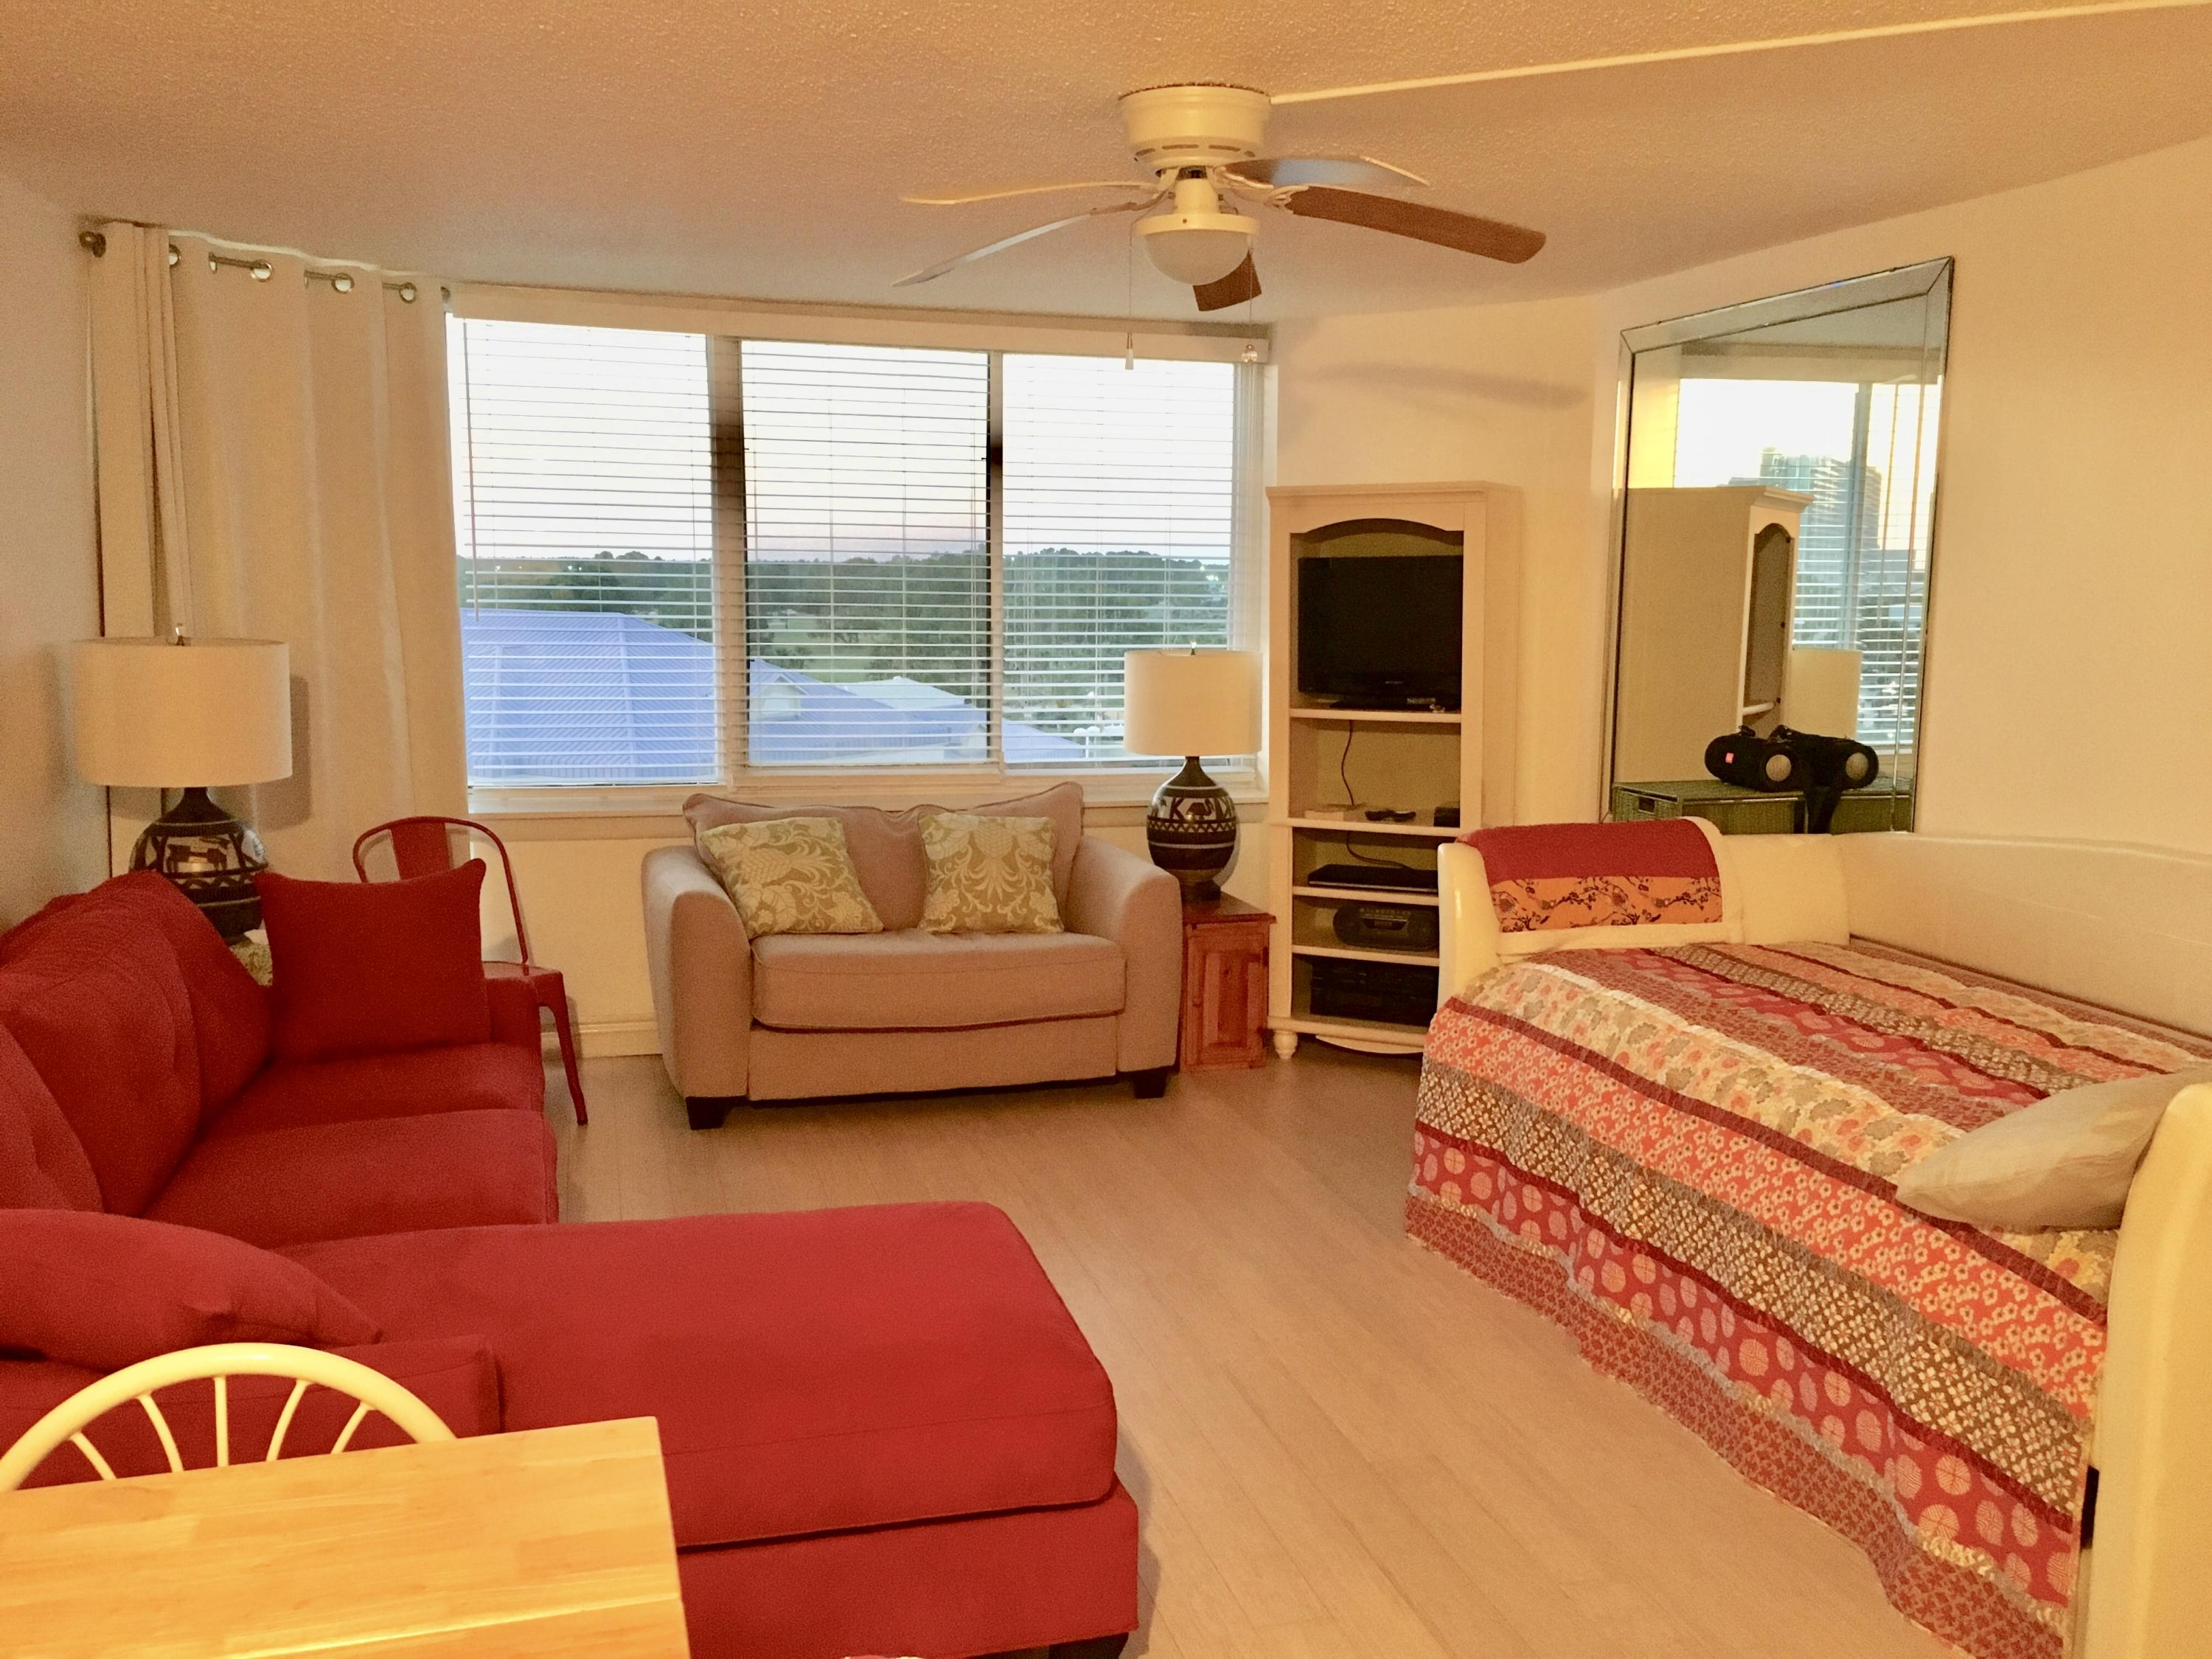 Studio unit with great sunset views of the Gulf. Great condominium complex with lots of amenities Including Gulfside pool, shuffleboard, kiddie pool, arcade, fitness center, meeting rooms, Internet cafe, and snack bar.